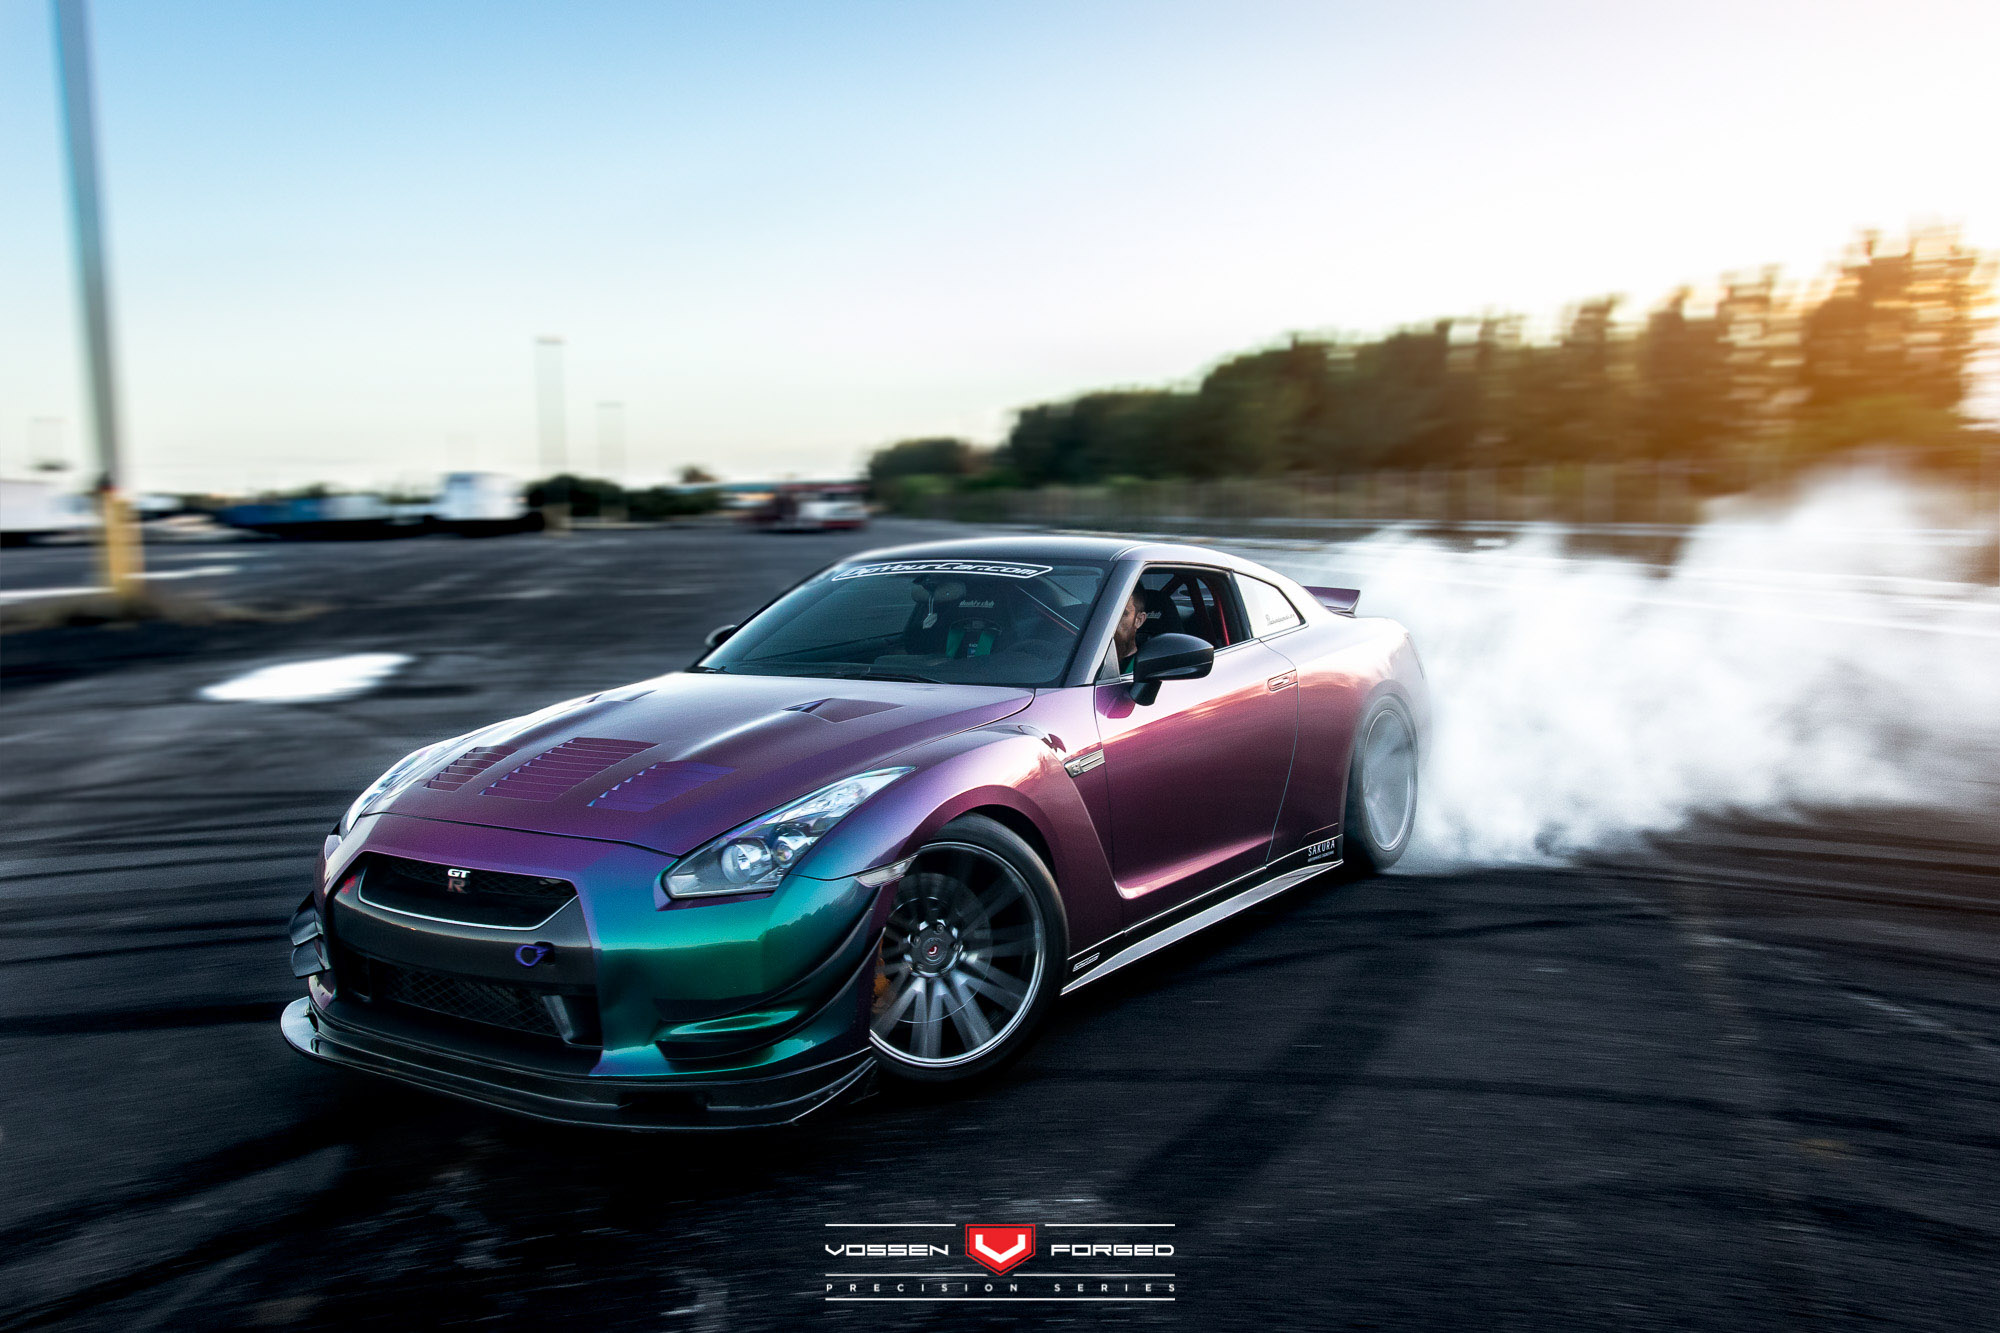 Juke Nissan 2016 >> This Bearded Man Has an RWD Nissan GT-R with Color Flip Paint - autoevolution